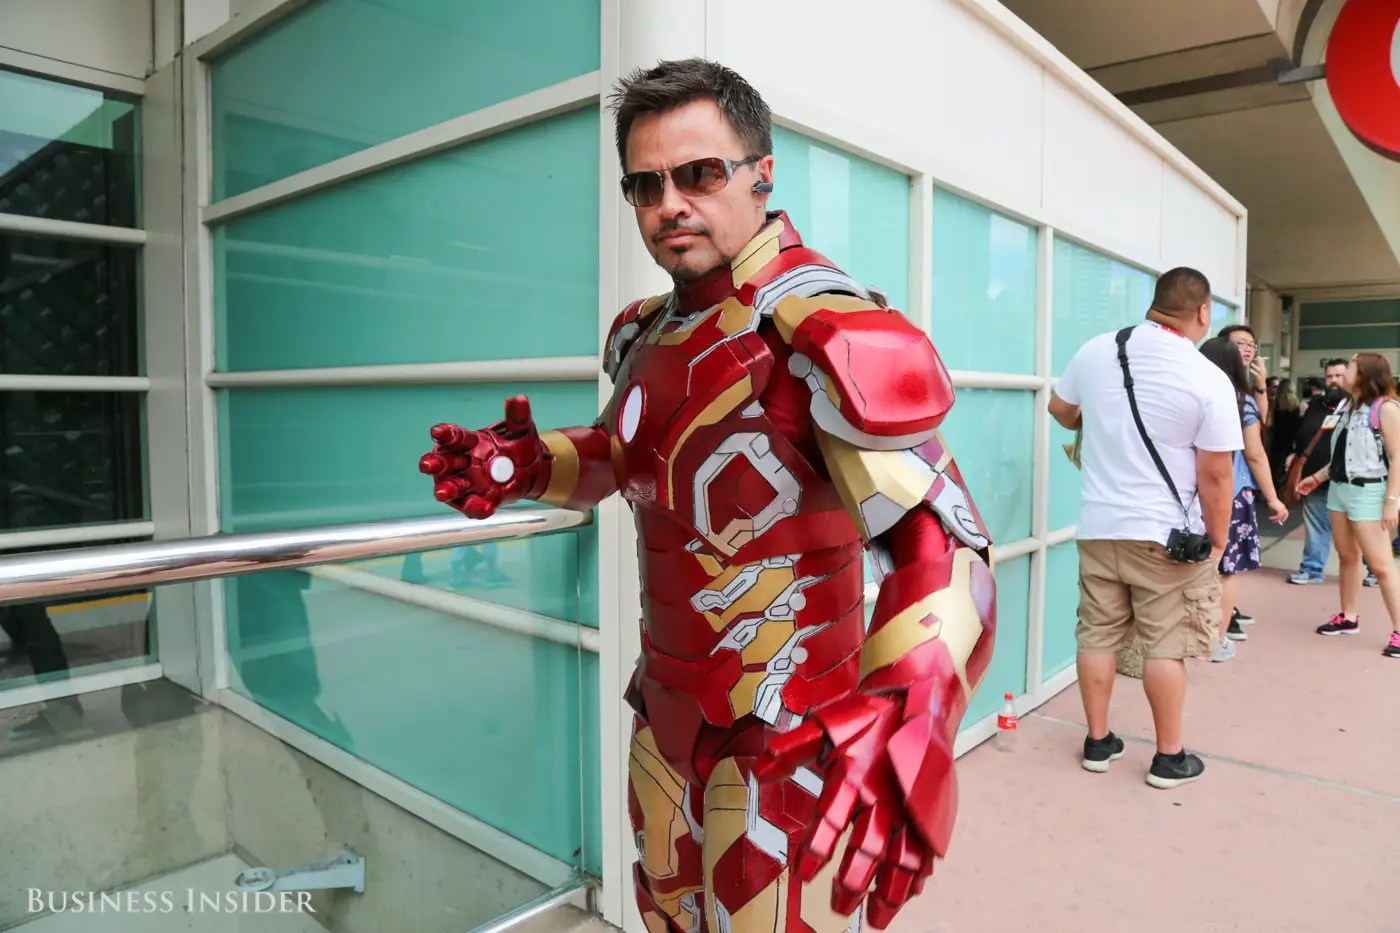 Superheroes are in no short supply. This cosplayer bears a